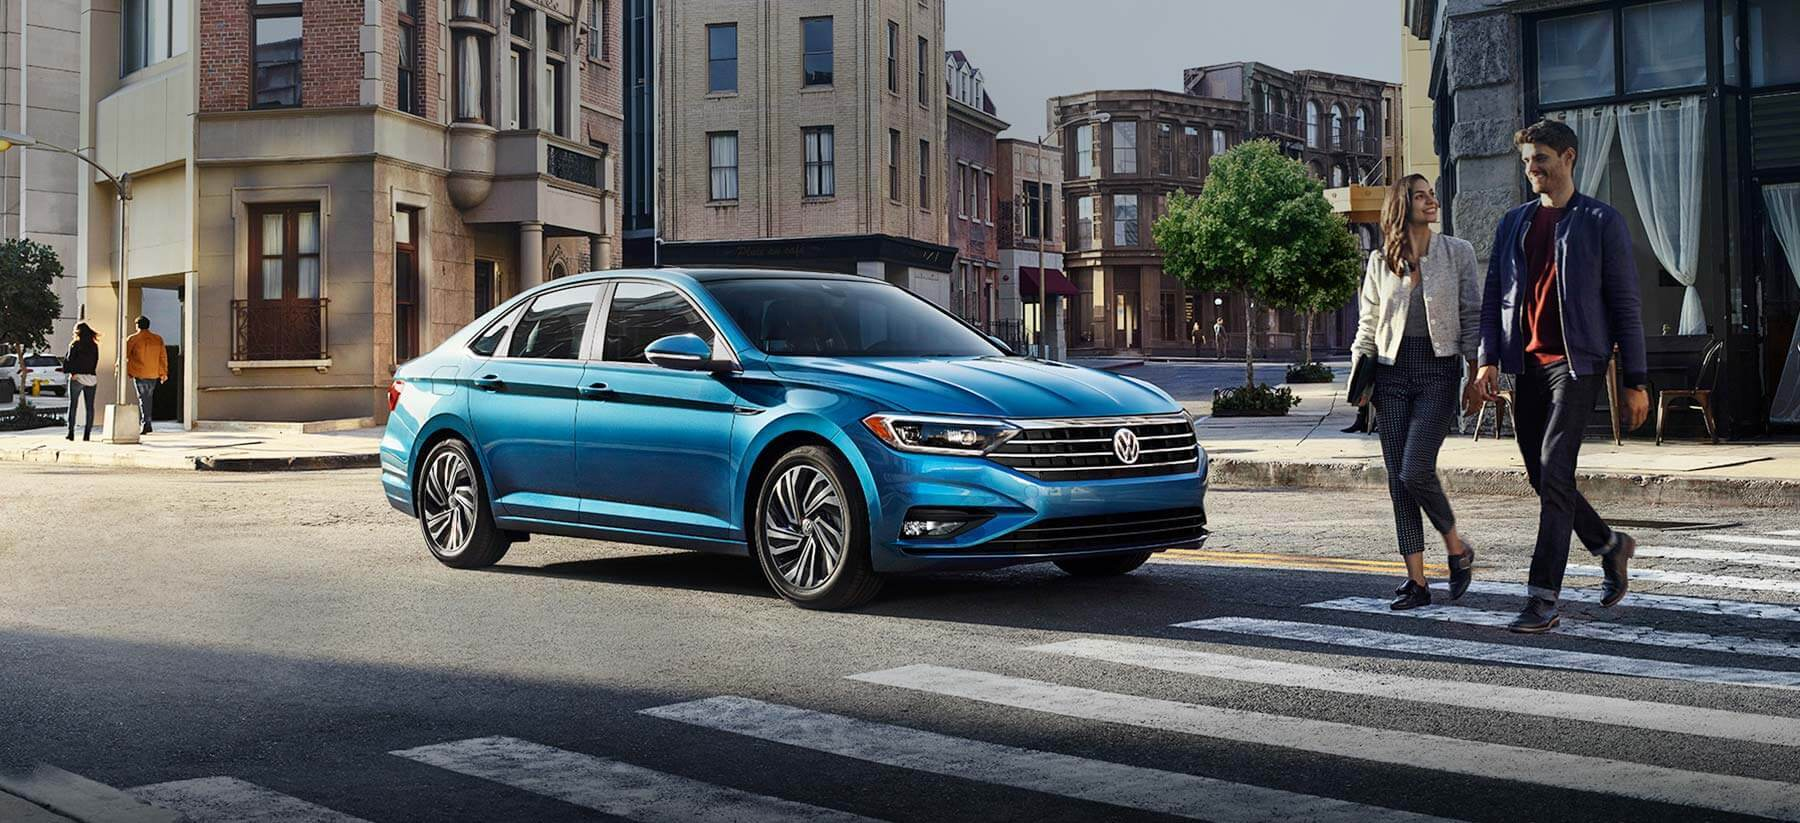 2019 Volkswagen Jetta in Ramsey, NJ